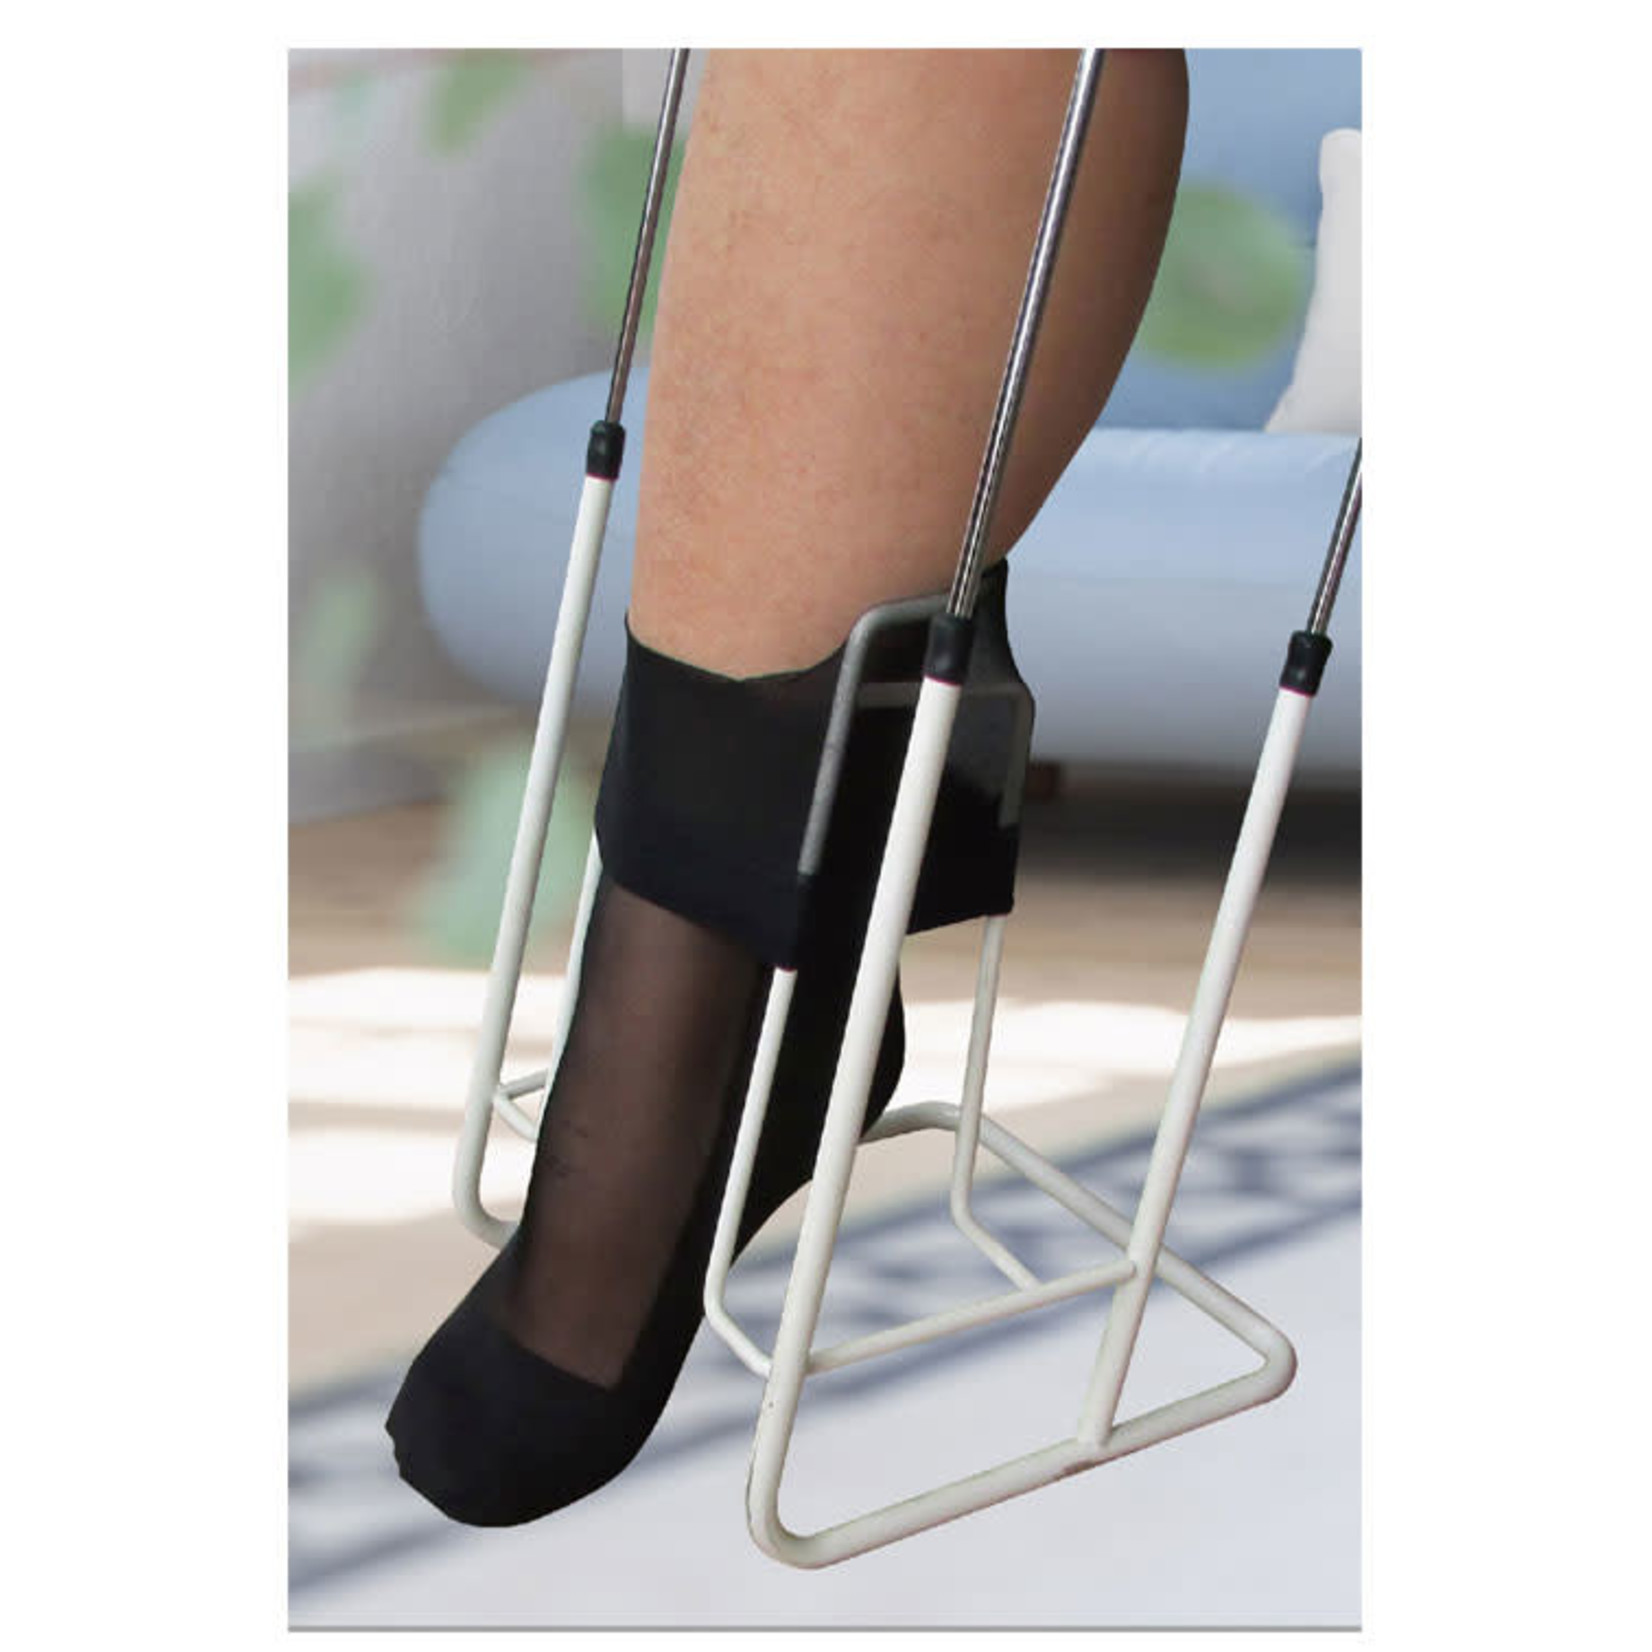 MOBB Stocking Donner for Compression Stockings